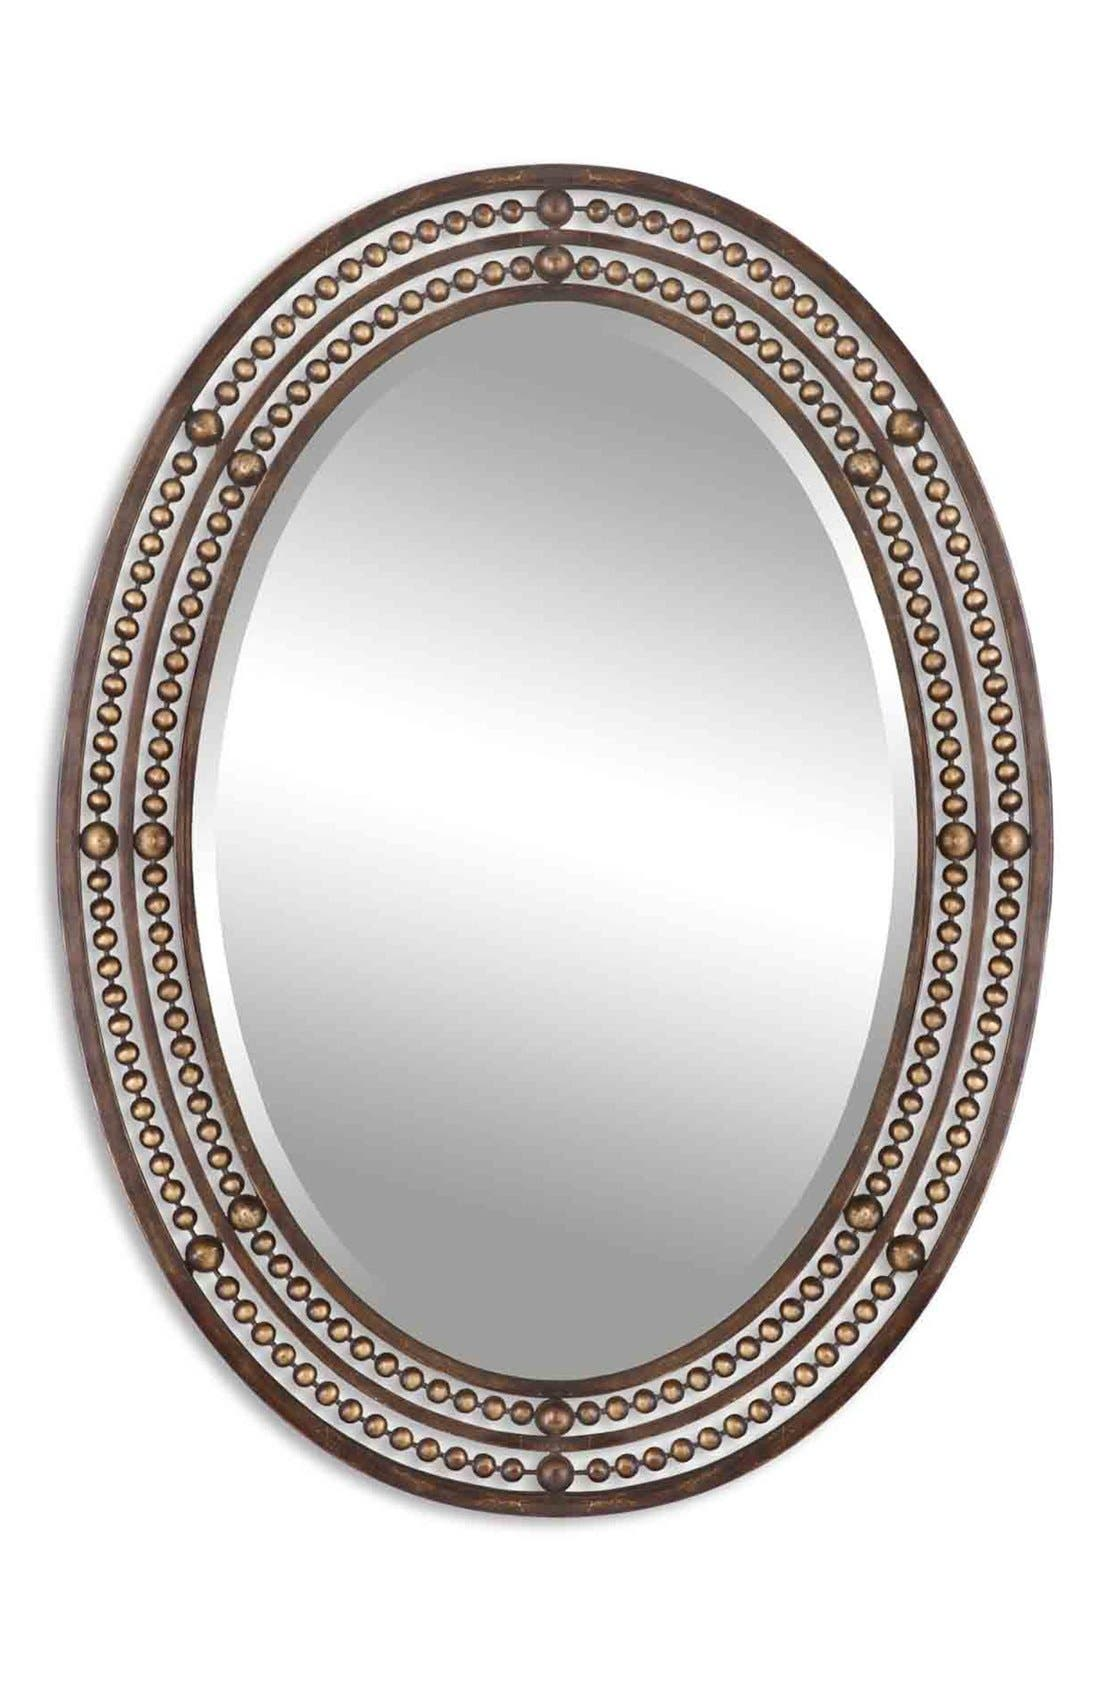 'Matney' Distressed Bronze Oval Wall Mirror,                             Main thumbnail 1, color,                             200